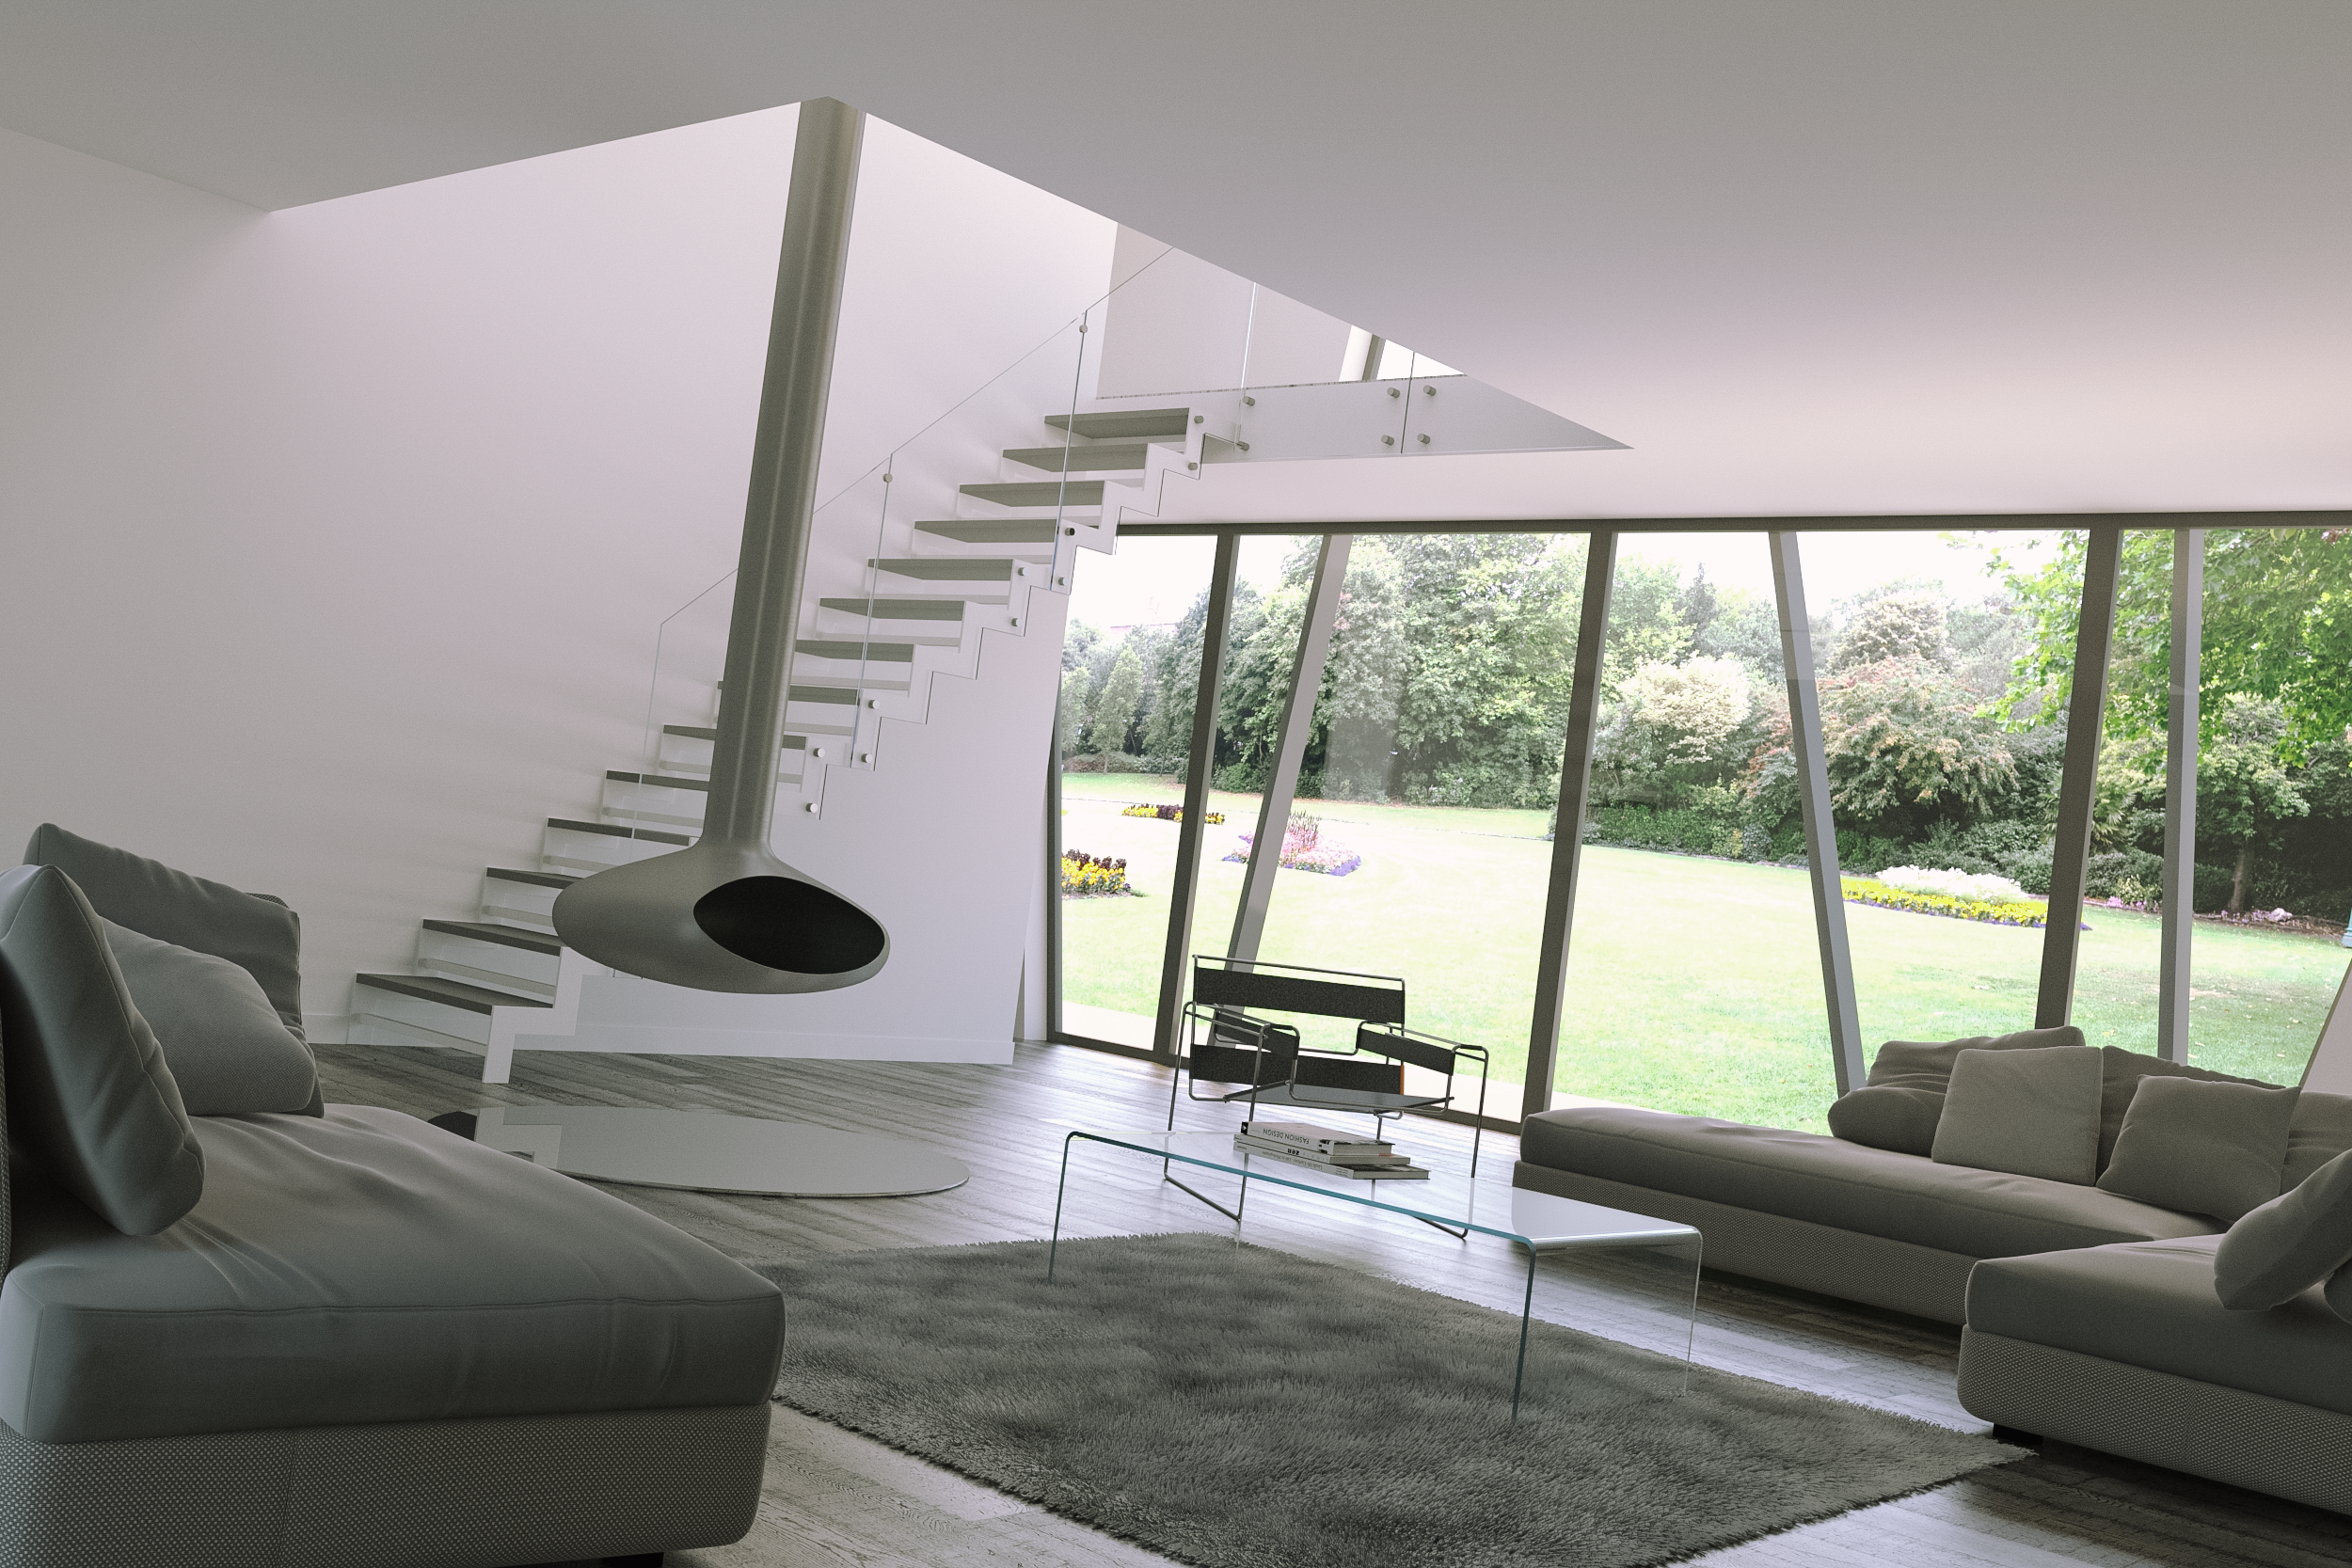 Autodesk 3ds max design d interni arketipo for Ville moderne design interni